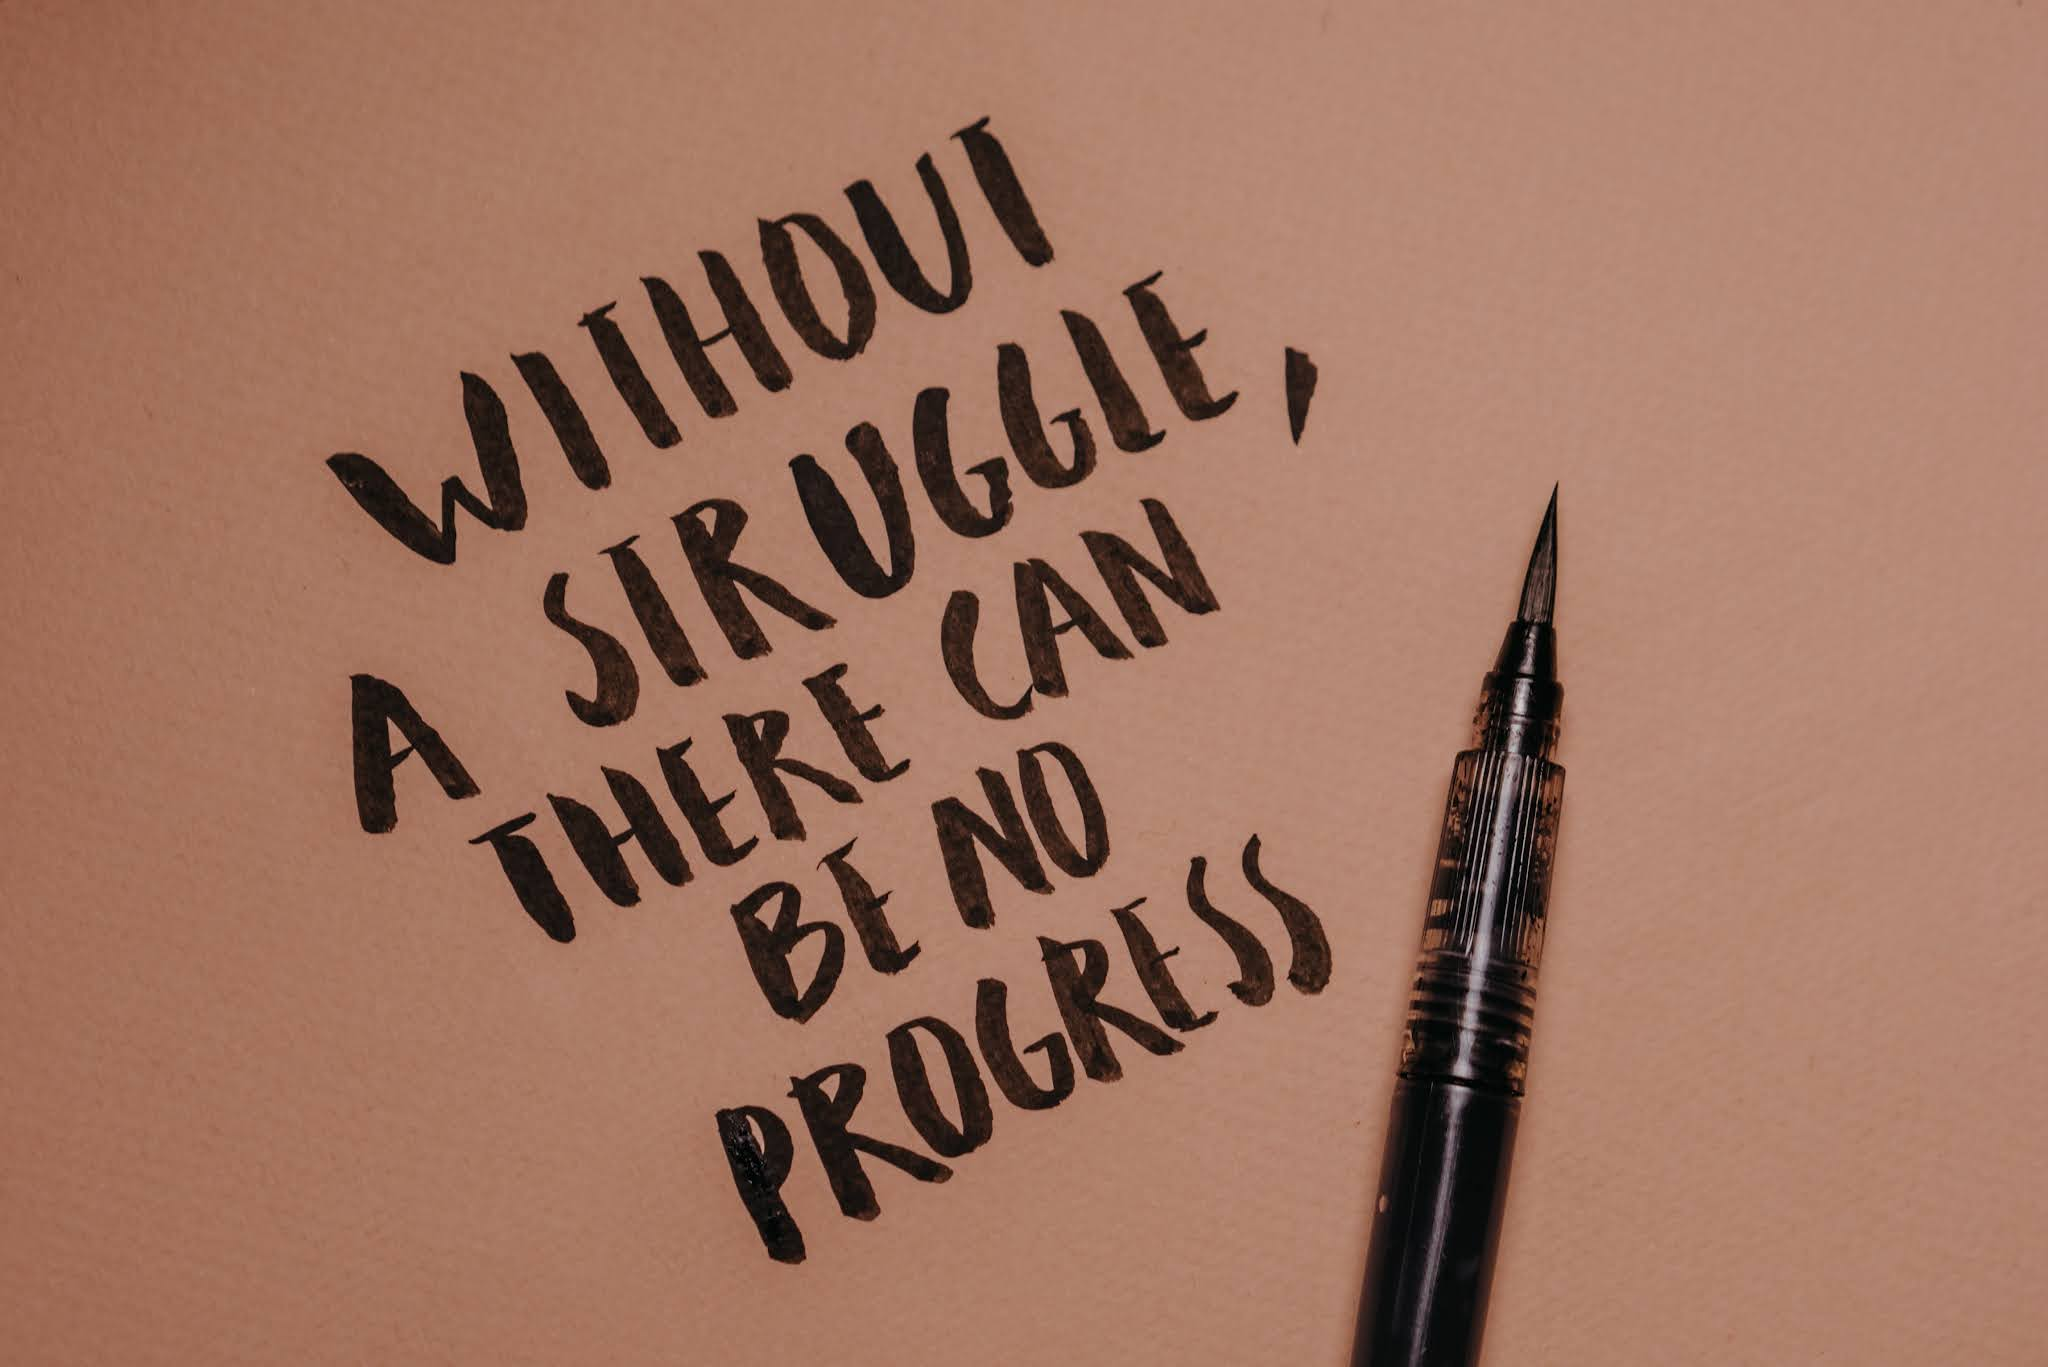 calligraphy on paper - with phrase 'without a struggle there can be no progress'